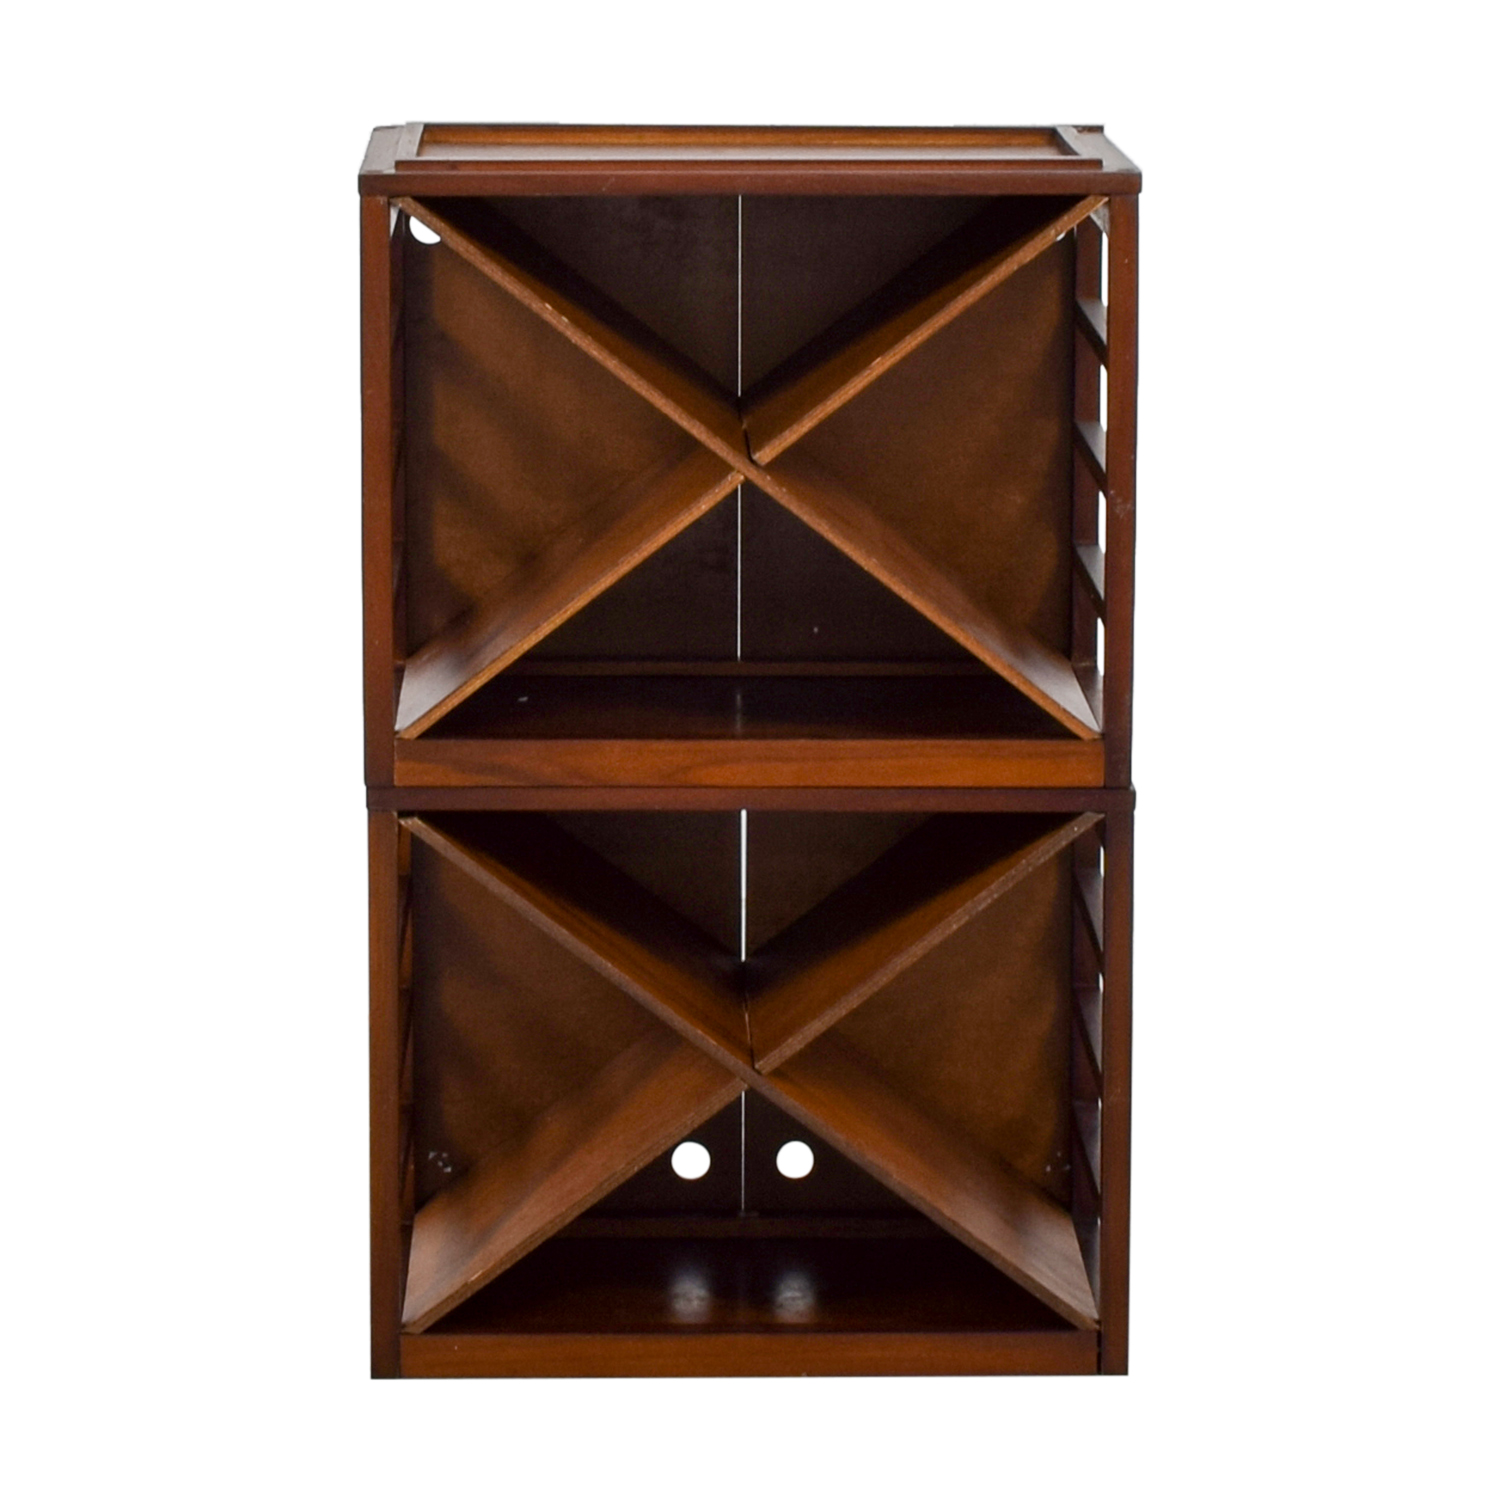 Wooden Wine Rack dimensions